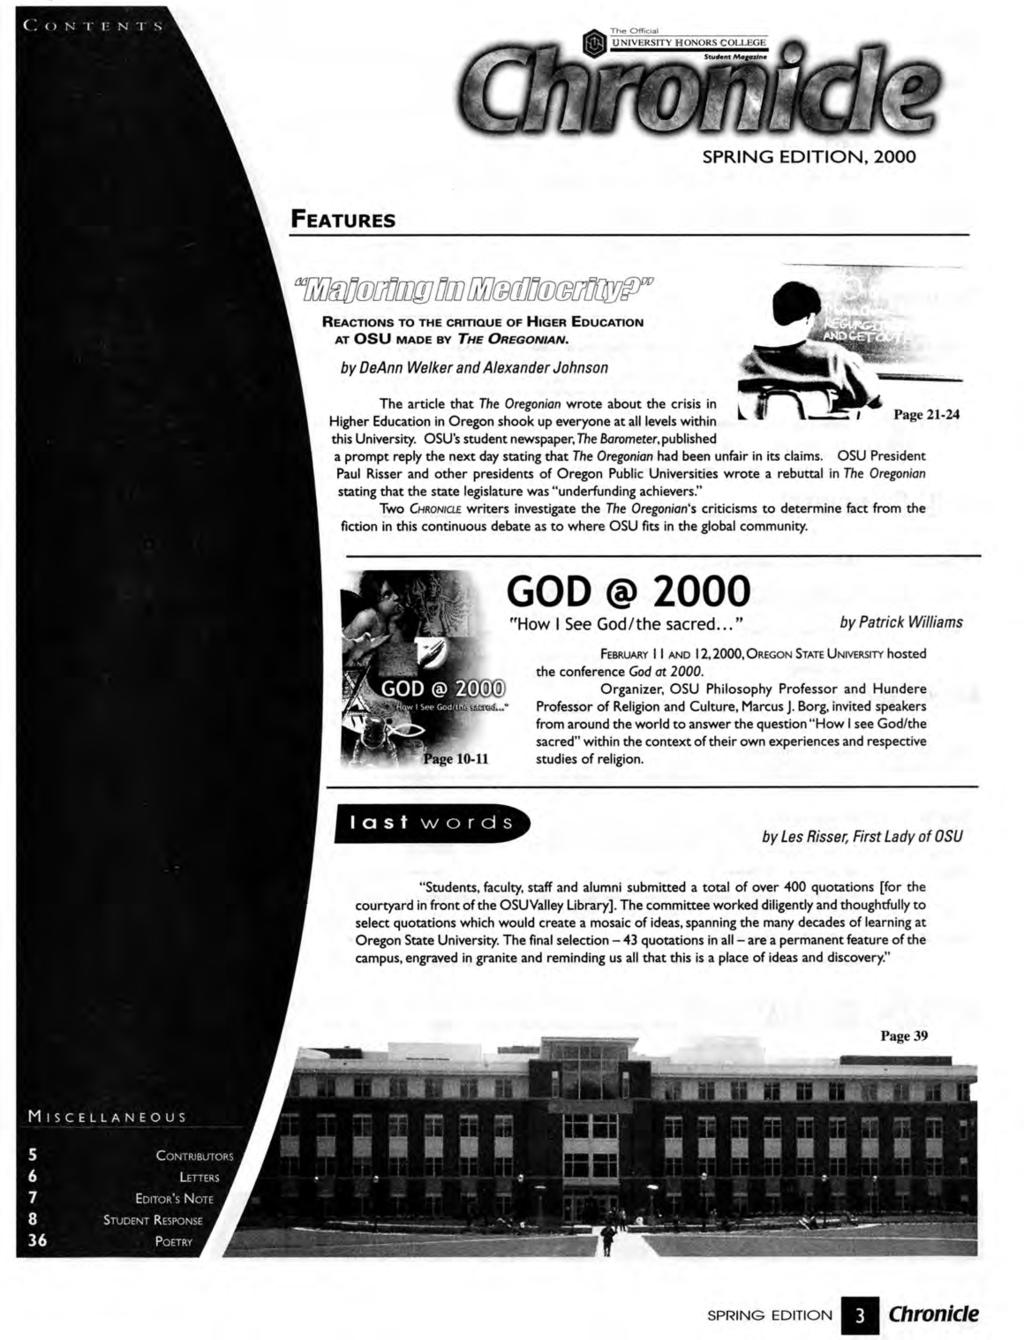 C 0 N T E N T S SPRING EDITION, 2000 FEATURES REACTIONS TO THE CRITIQUE OF HIGER EDUCATION AT OSU MADE BY THE OREGONIAN.